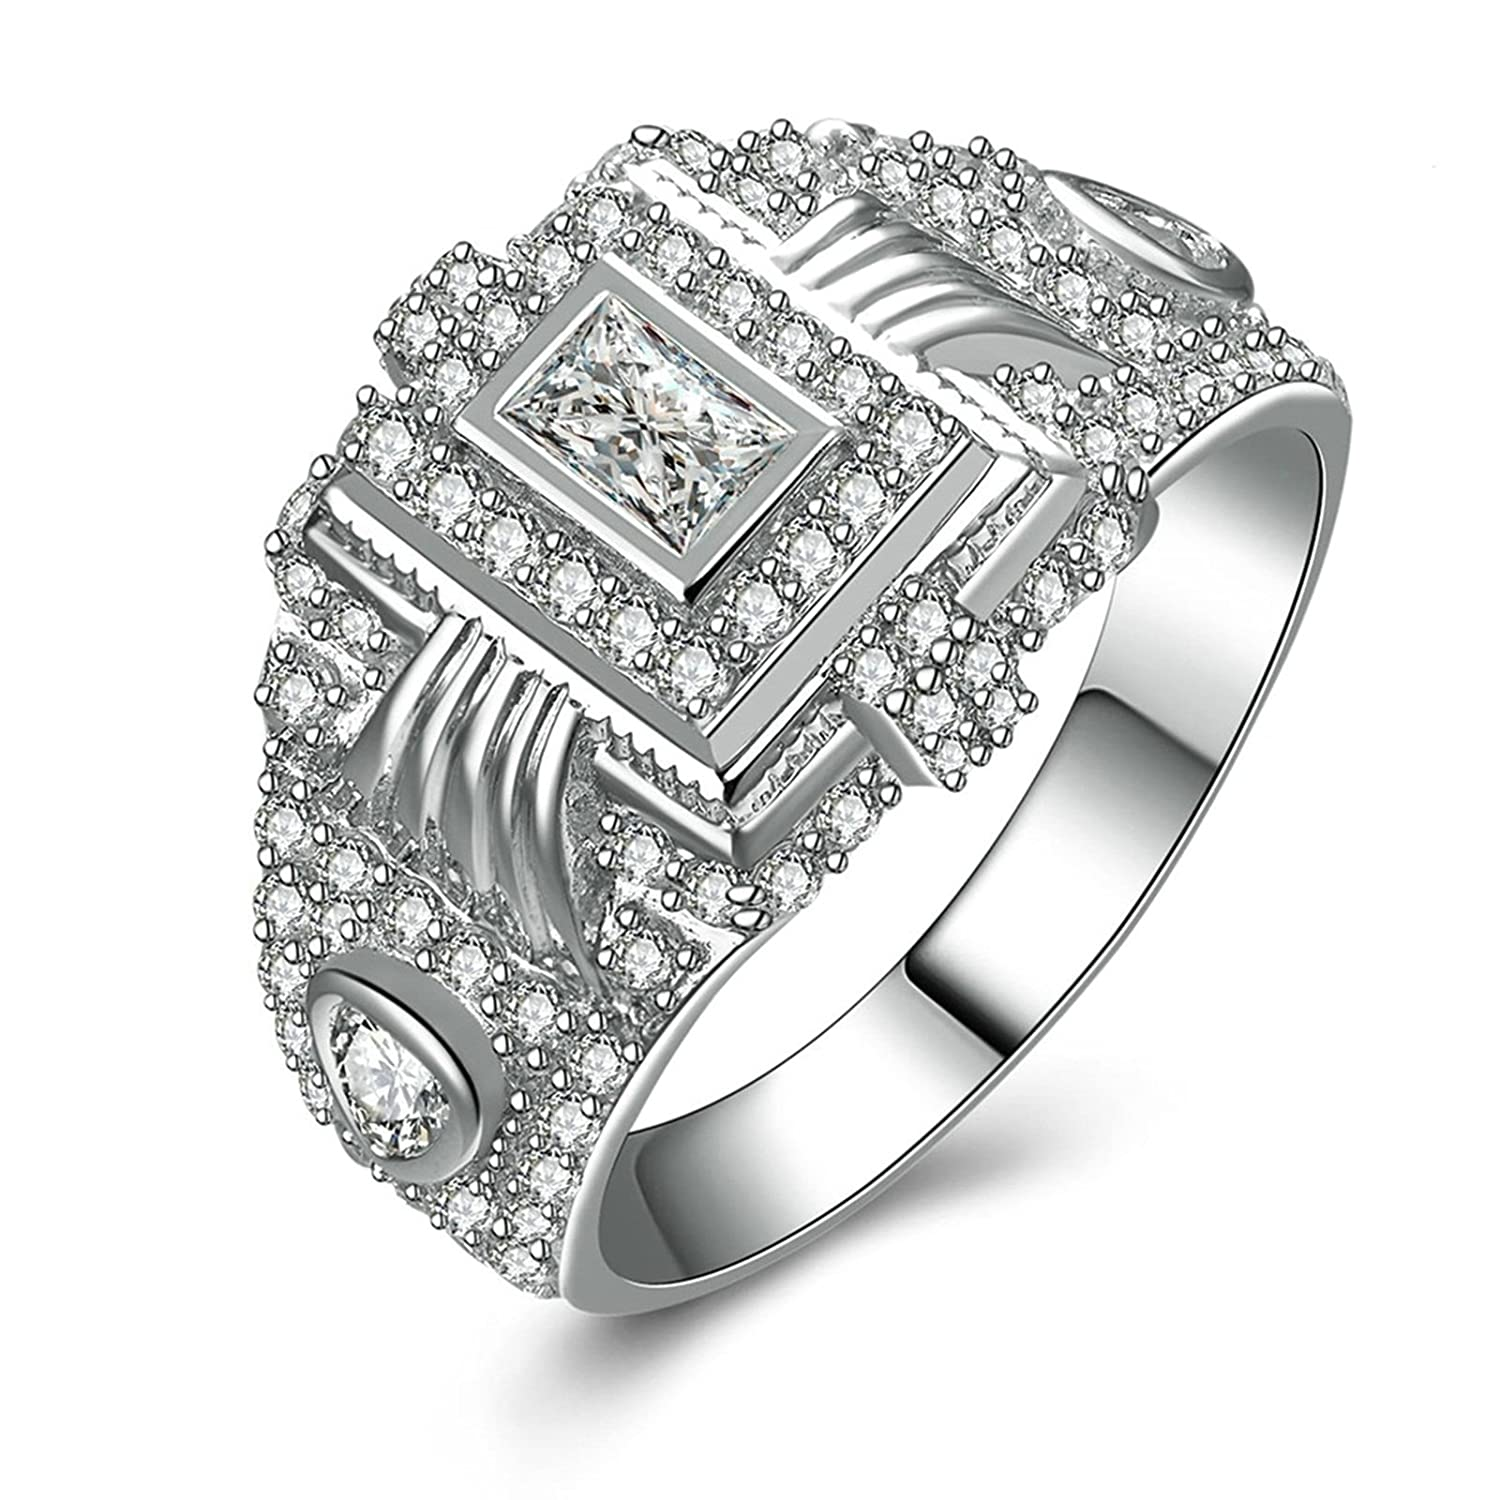 Aokarry 925 Sterling Silver Mens Promise Ring Engraved Princess /& Round White Cubic Zirconia Size 5-12